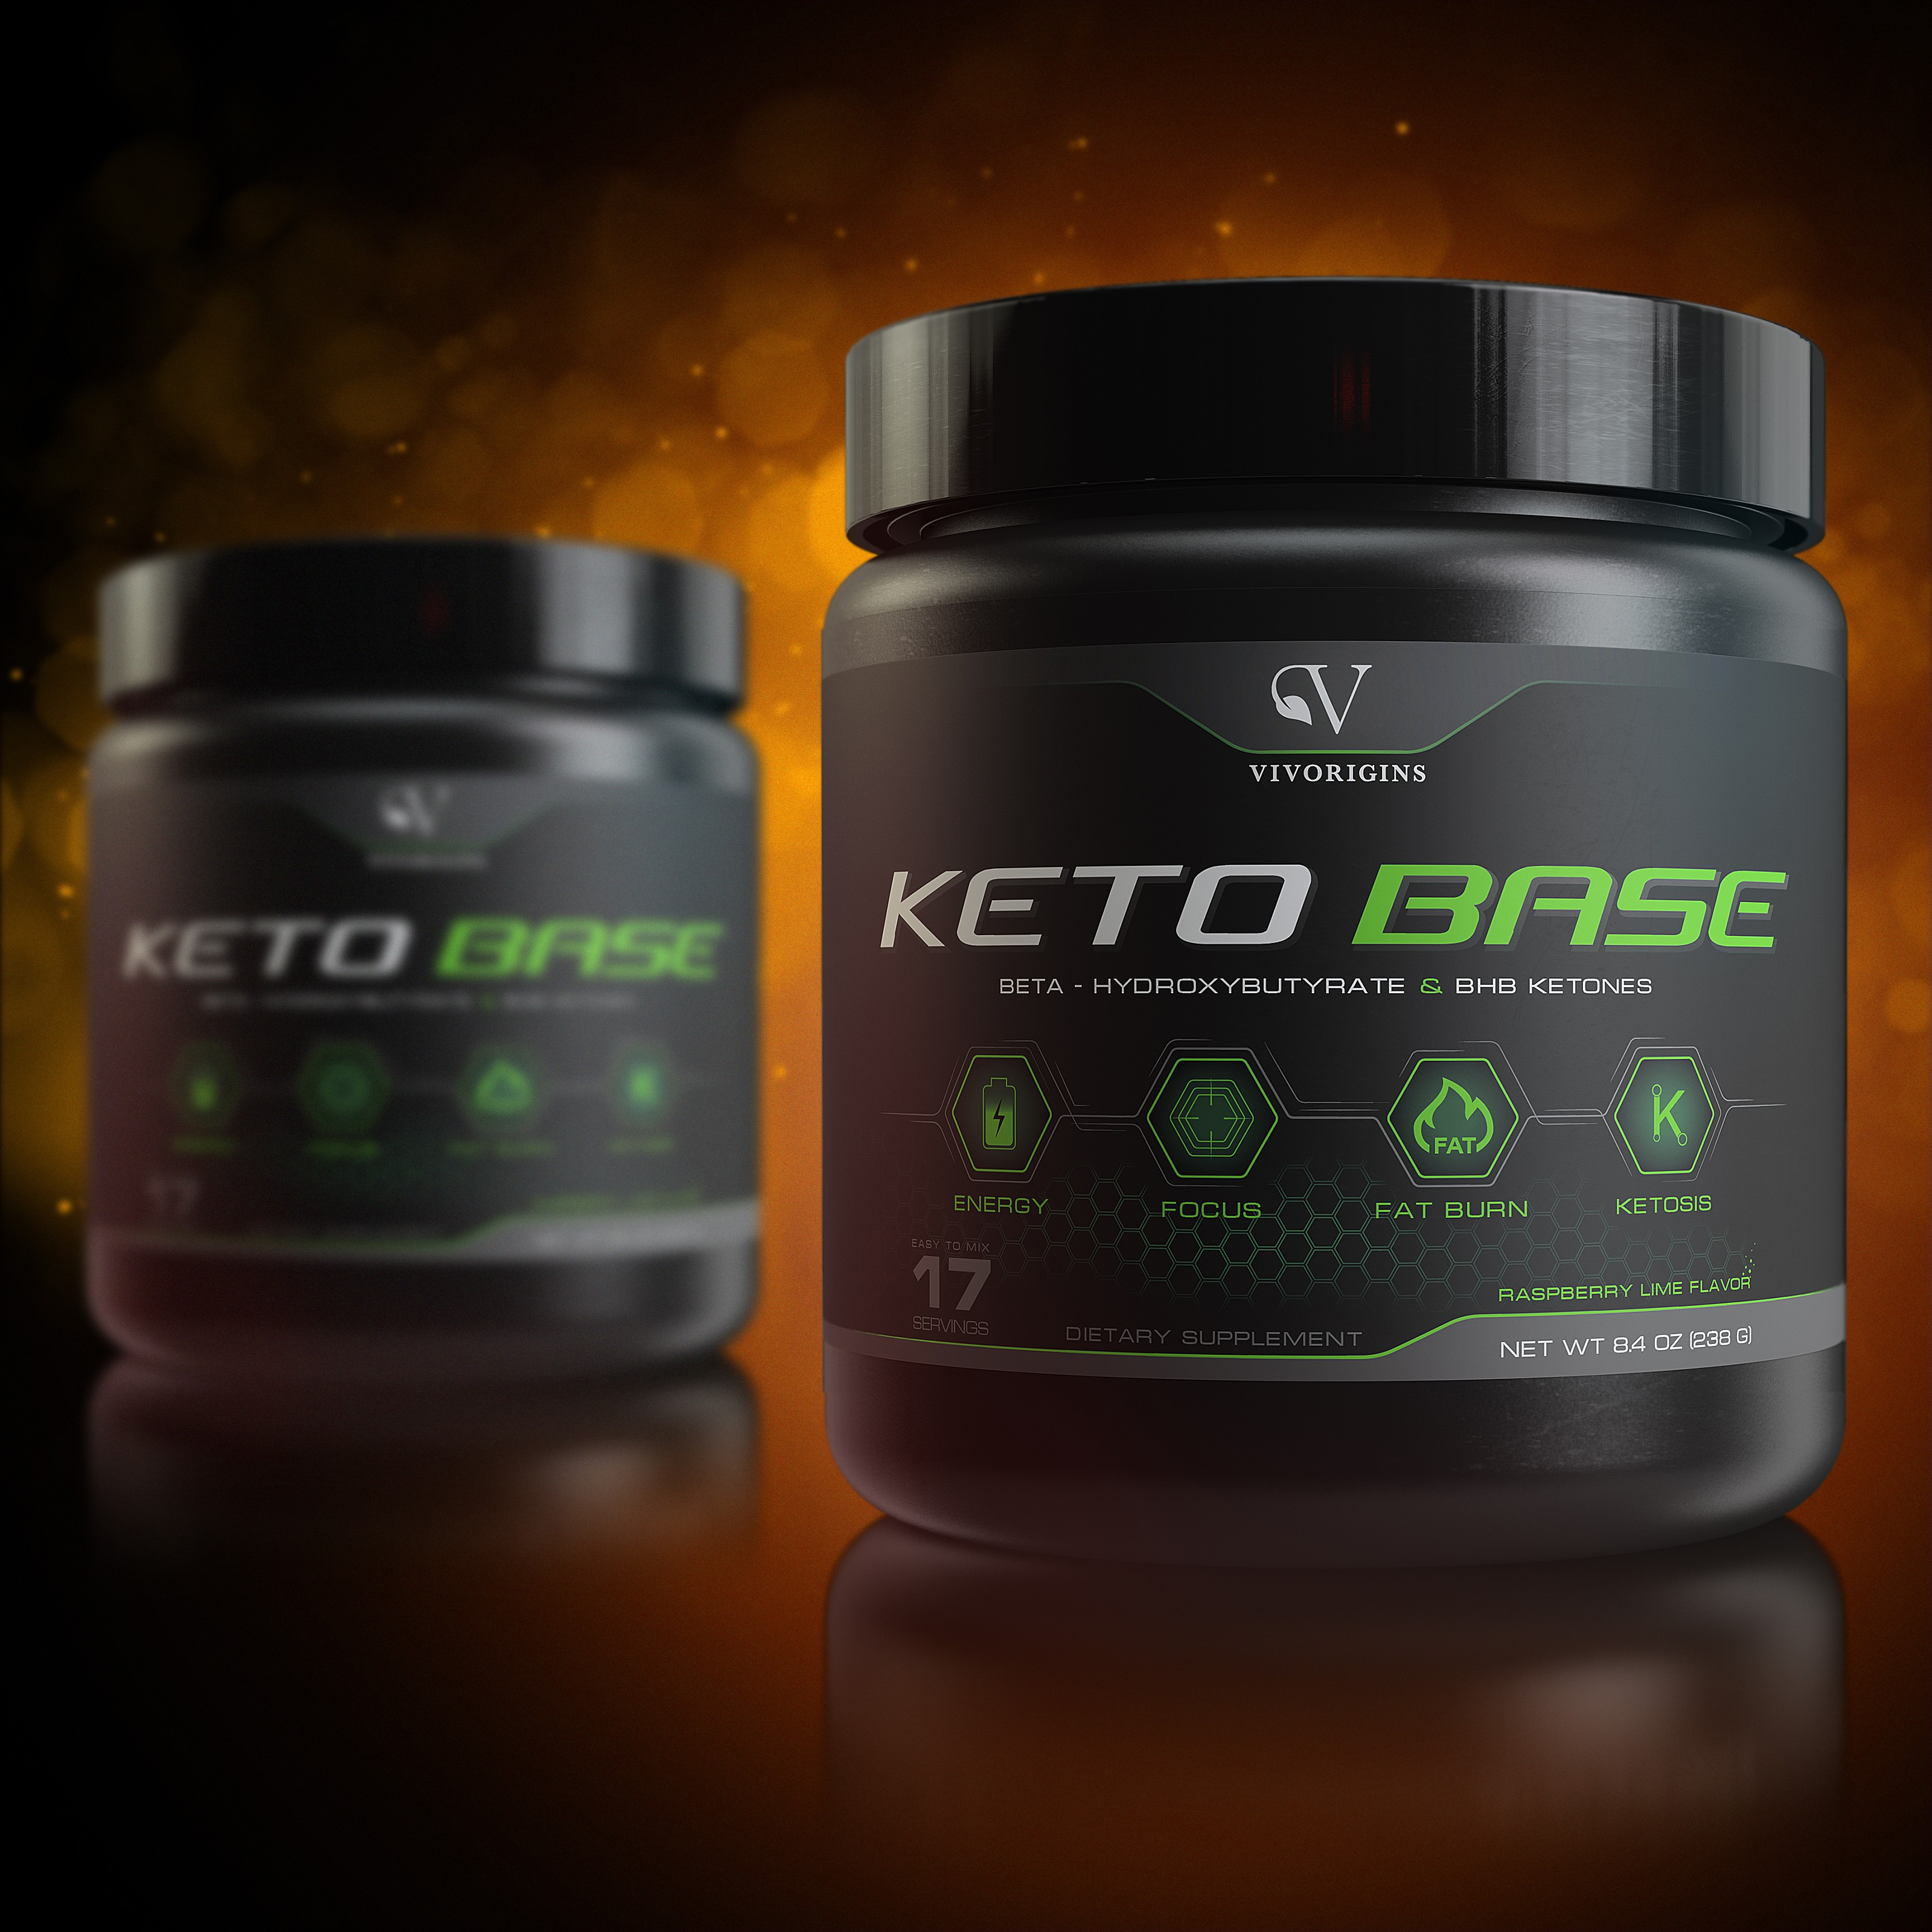 Need a great label design for new product Keto Zone